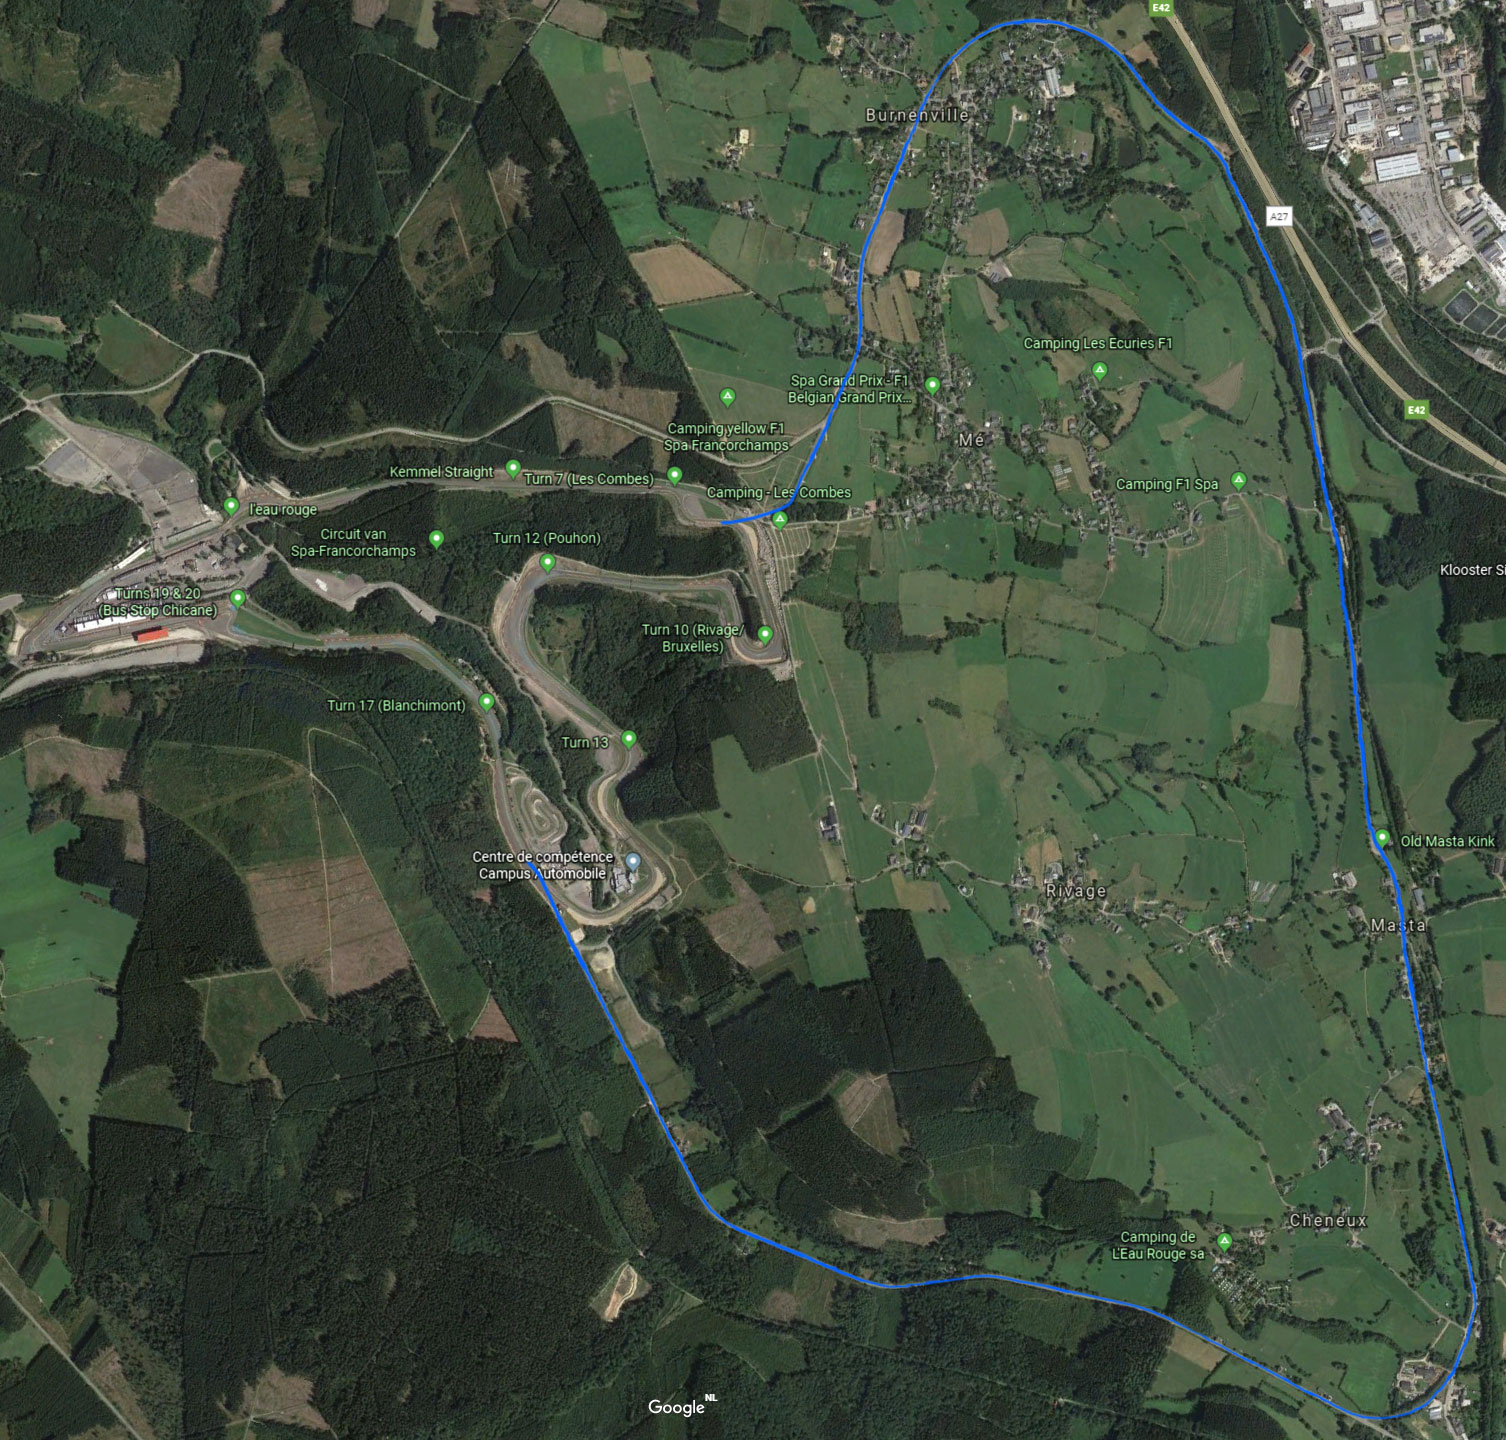 The old and new Spa-Franchorchamps circuit layout